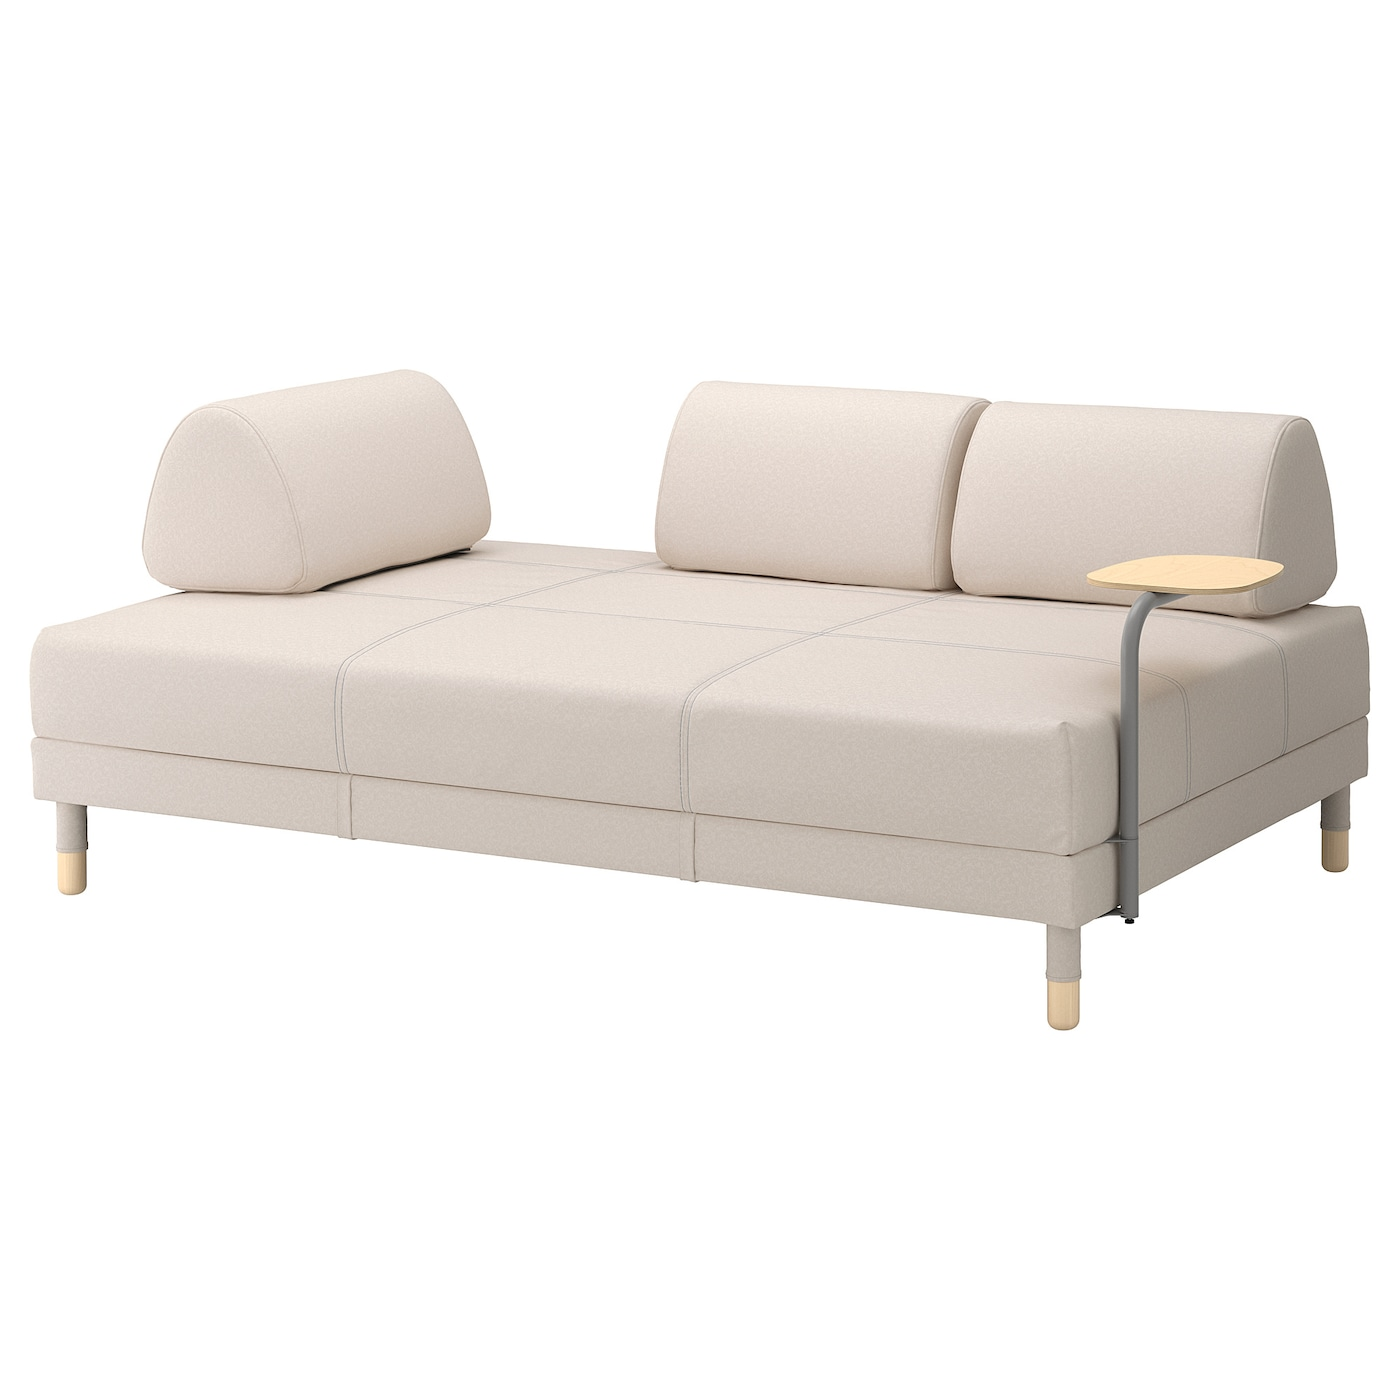 flottebo sofa bed with side table vissle beige 120 cm ikea. Black Bedroom Furniture Sets. Home Design Ideas